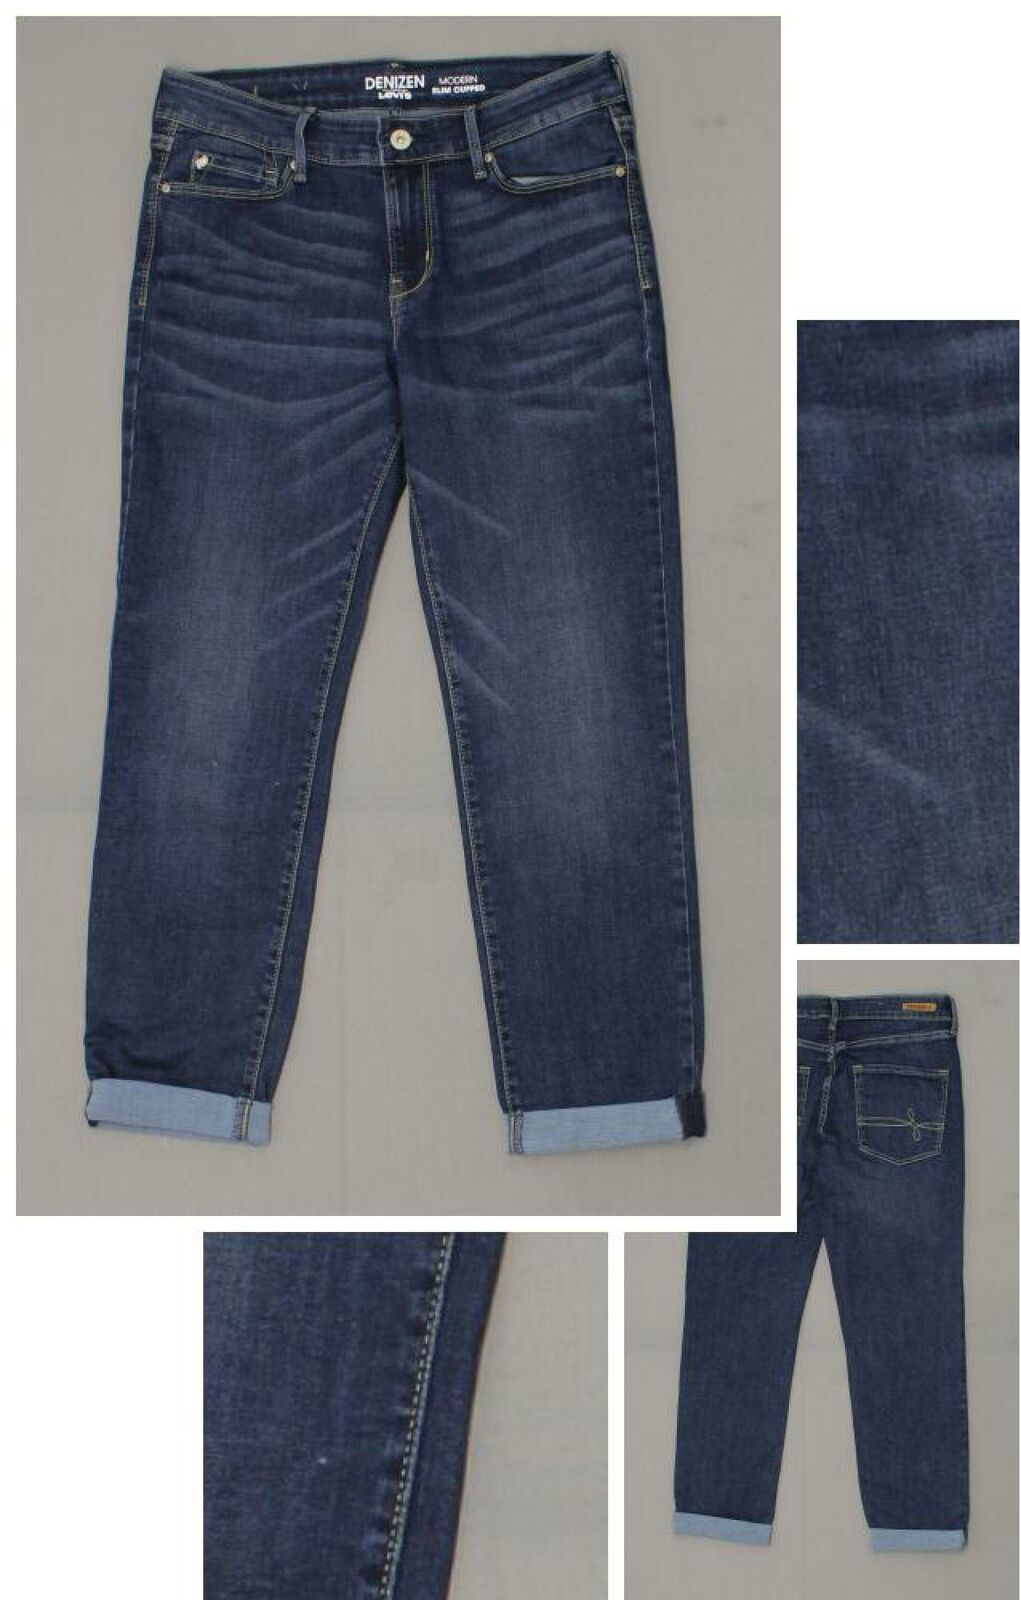 fc44259b New Denizen from Levi's Women's Mid-Rise Modern Slim Cuffed Jeans View  Image Full Size